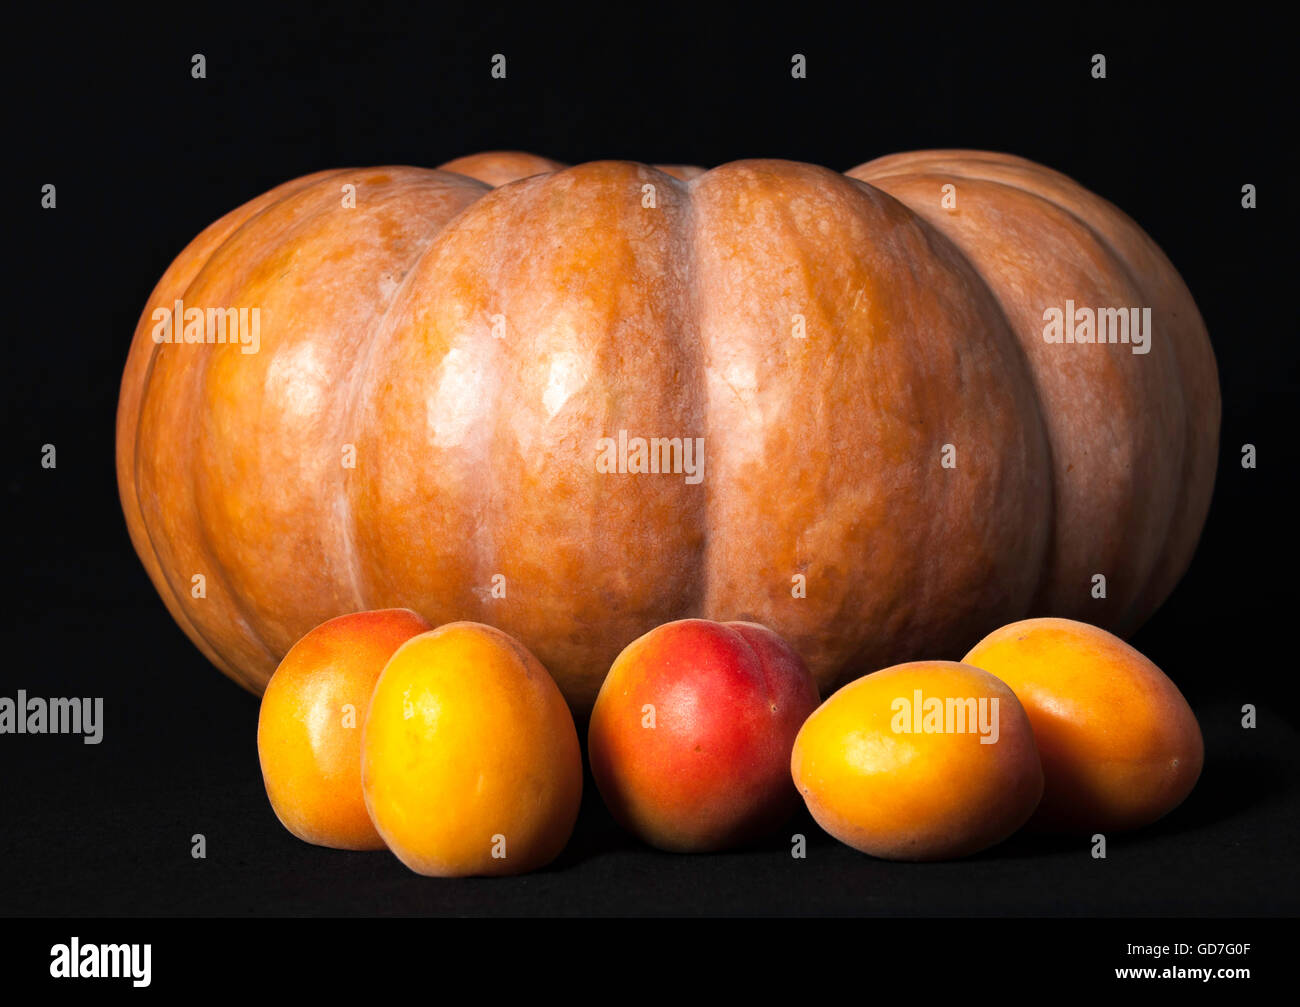 Pumpkin and 5 Peaches photographed on black backdrop in Studio - Stock Image